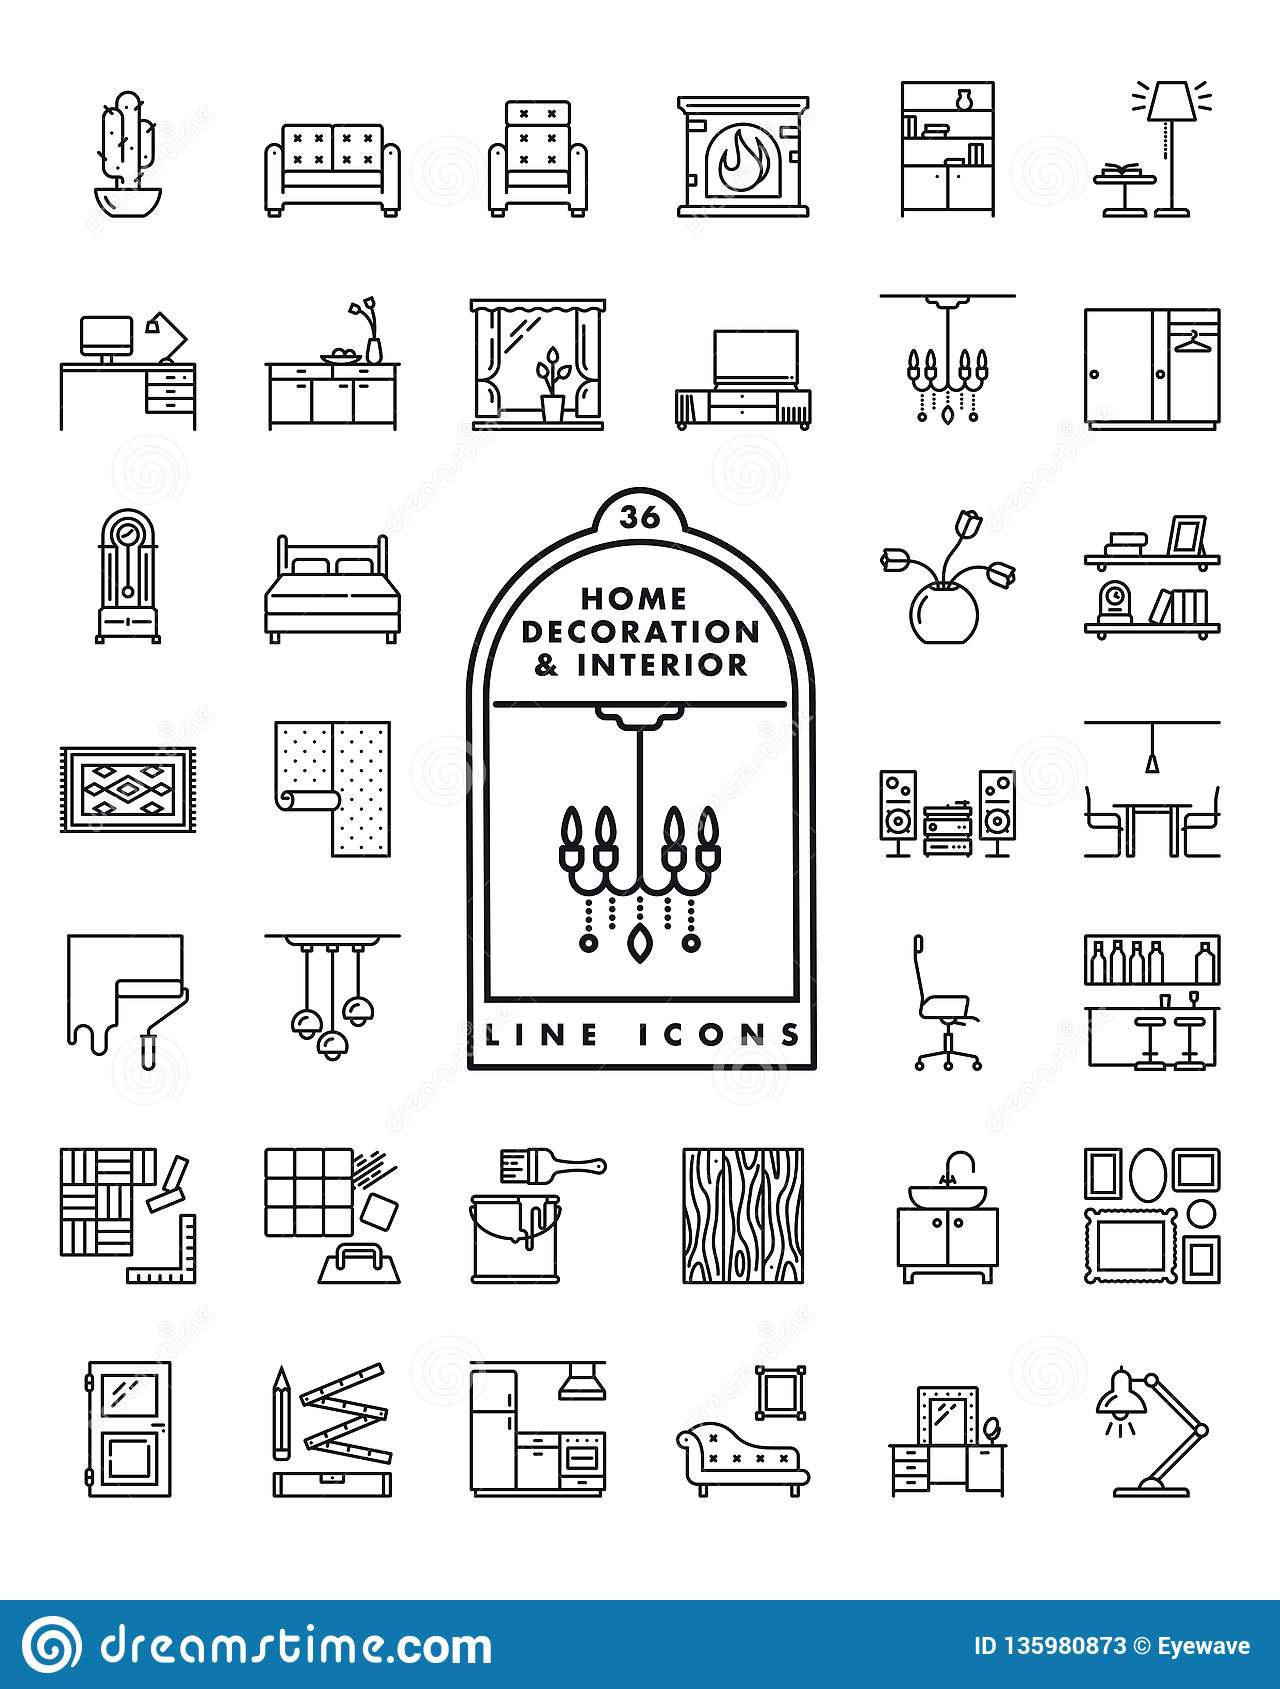 Home decoration and interior line icons vector set